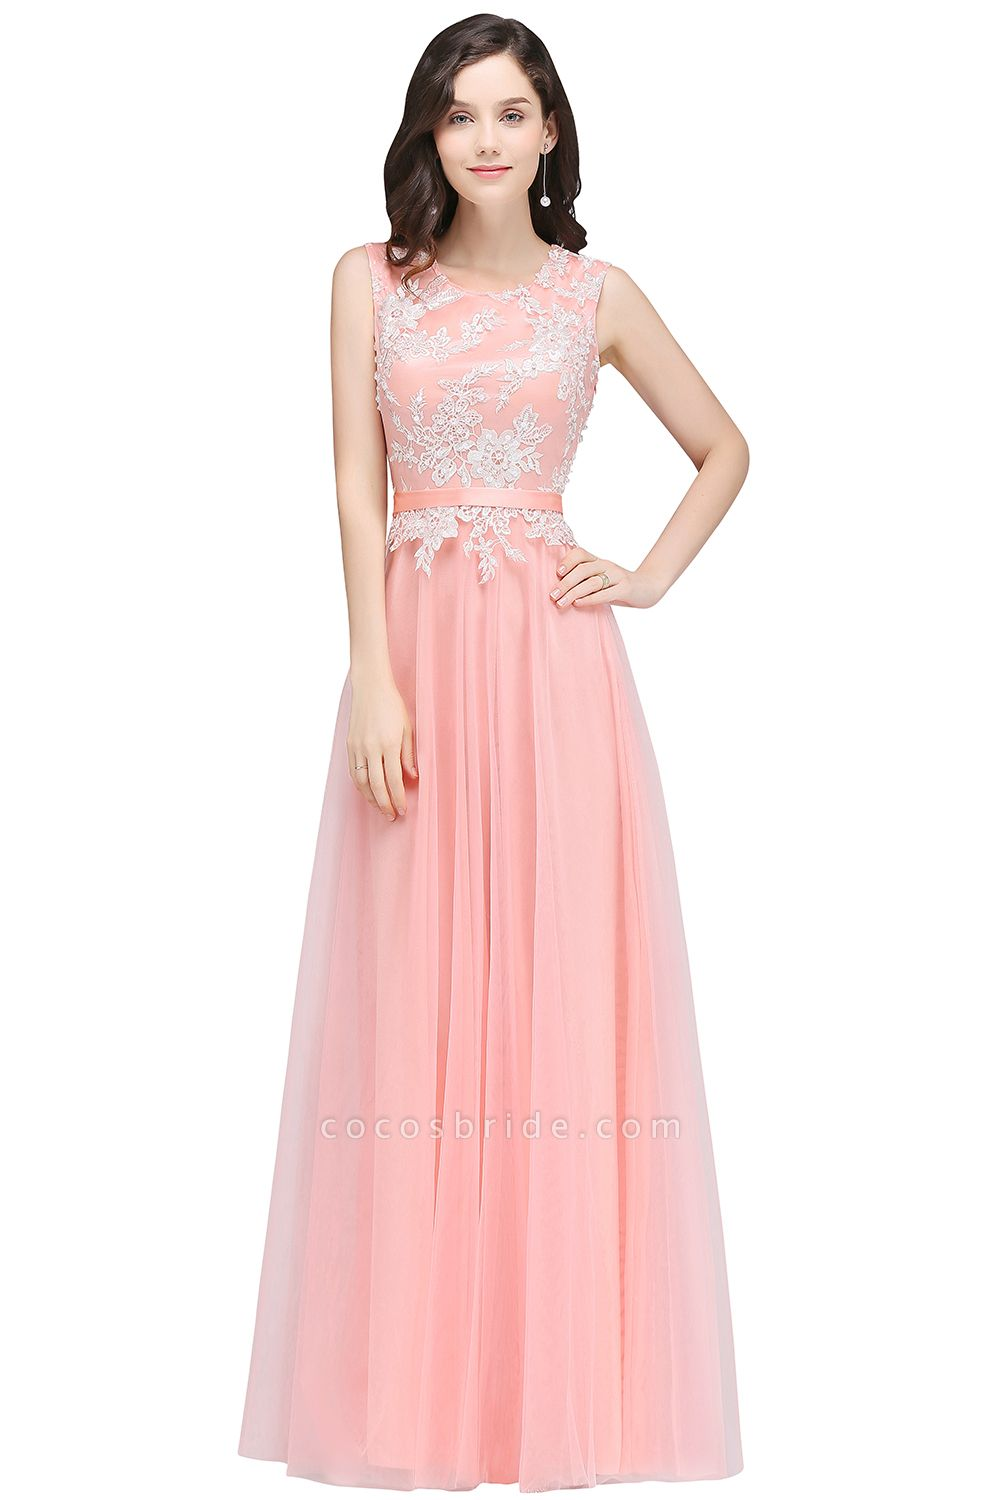 CARLY | A-line Jewel Neck Long Tulle Pink Prom Dresses with Sash